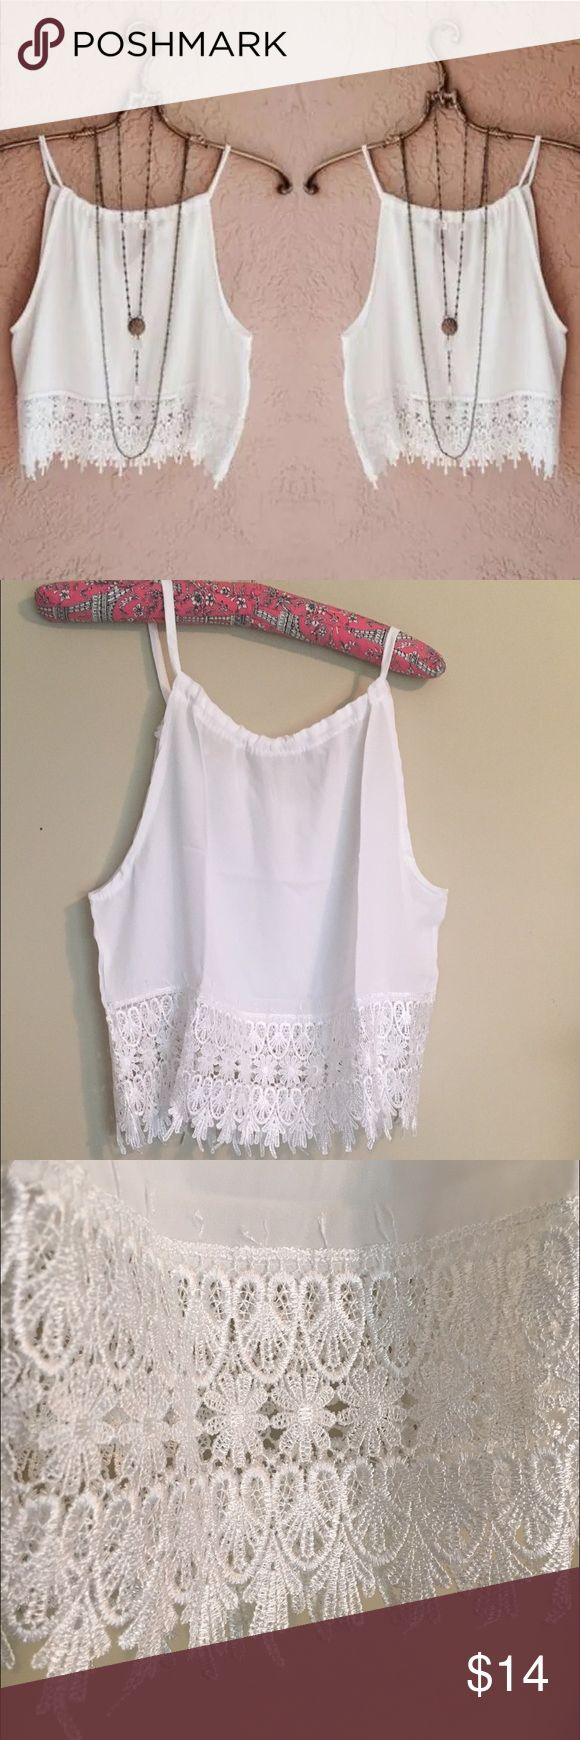 """White Cropped Sleeveless Top w Lace Boho Chic  Pair with a choker and long skirt ..... Looks great with anything.   Material: Chiffon  Size: Large Sleeveless  Please check measurements {sometimes my boutique sizes run small}  Width {from underarm seam to underarm seam} 18.5"""" Length: {from collar to bottom of lace} 14"""" Tops Crop Tops"""